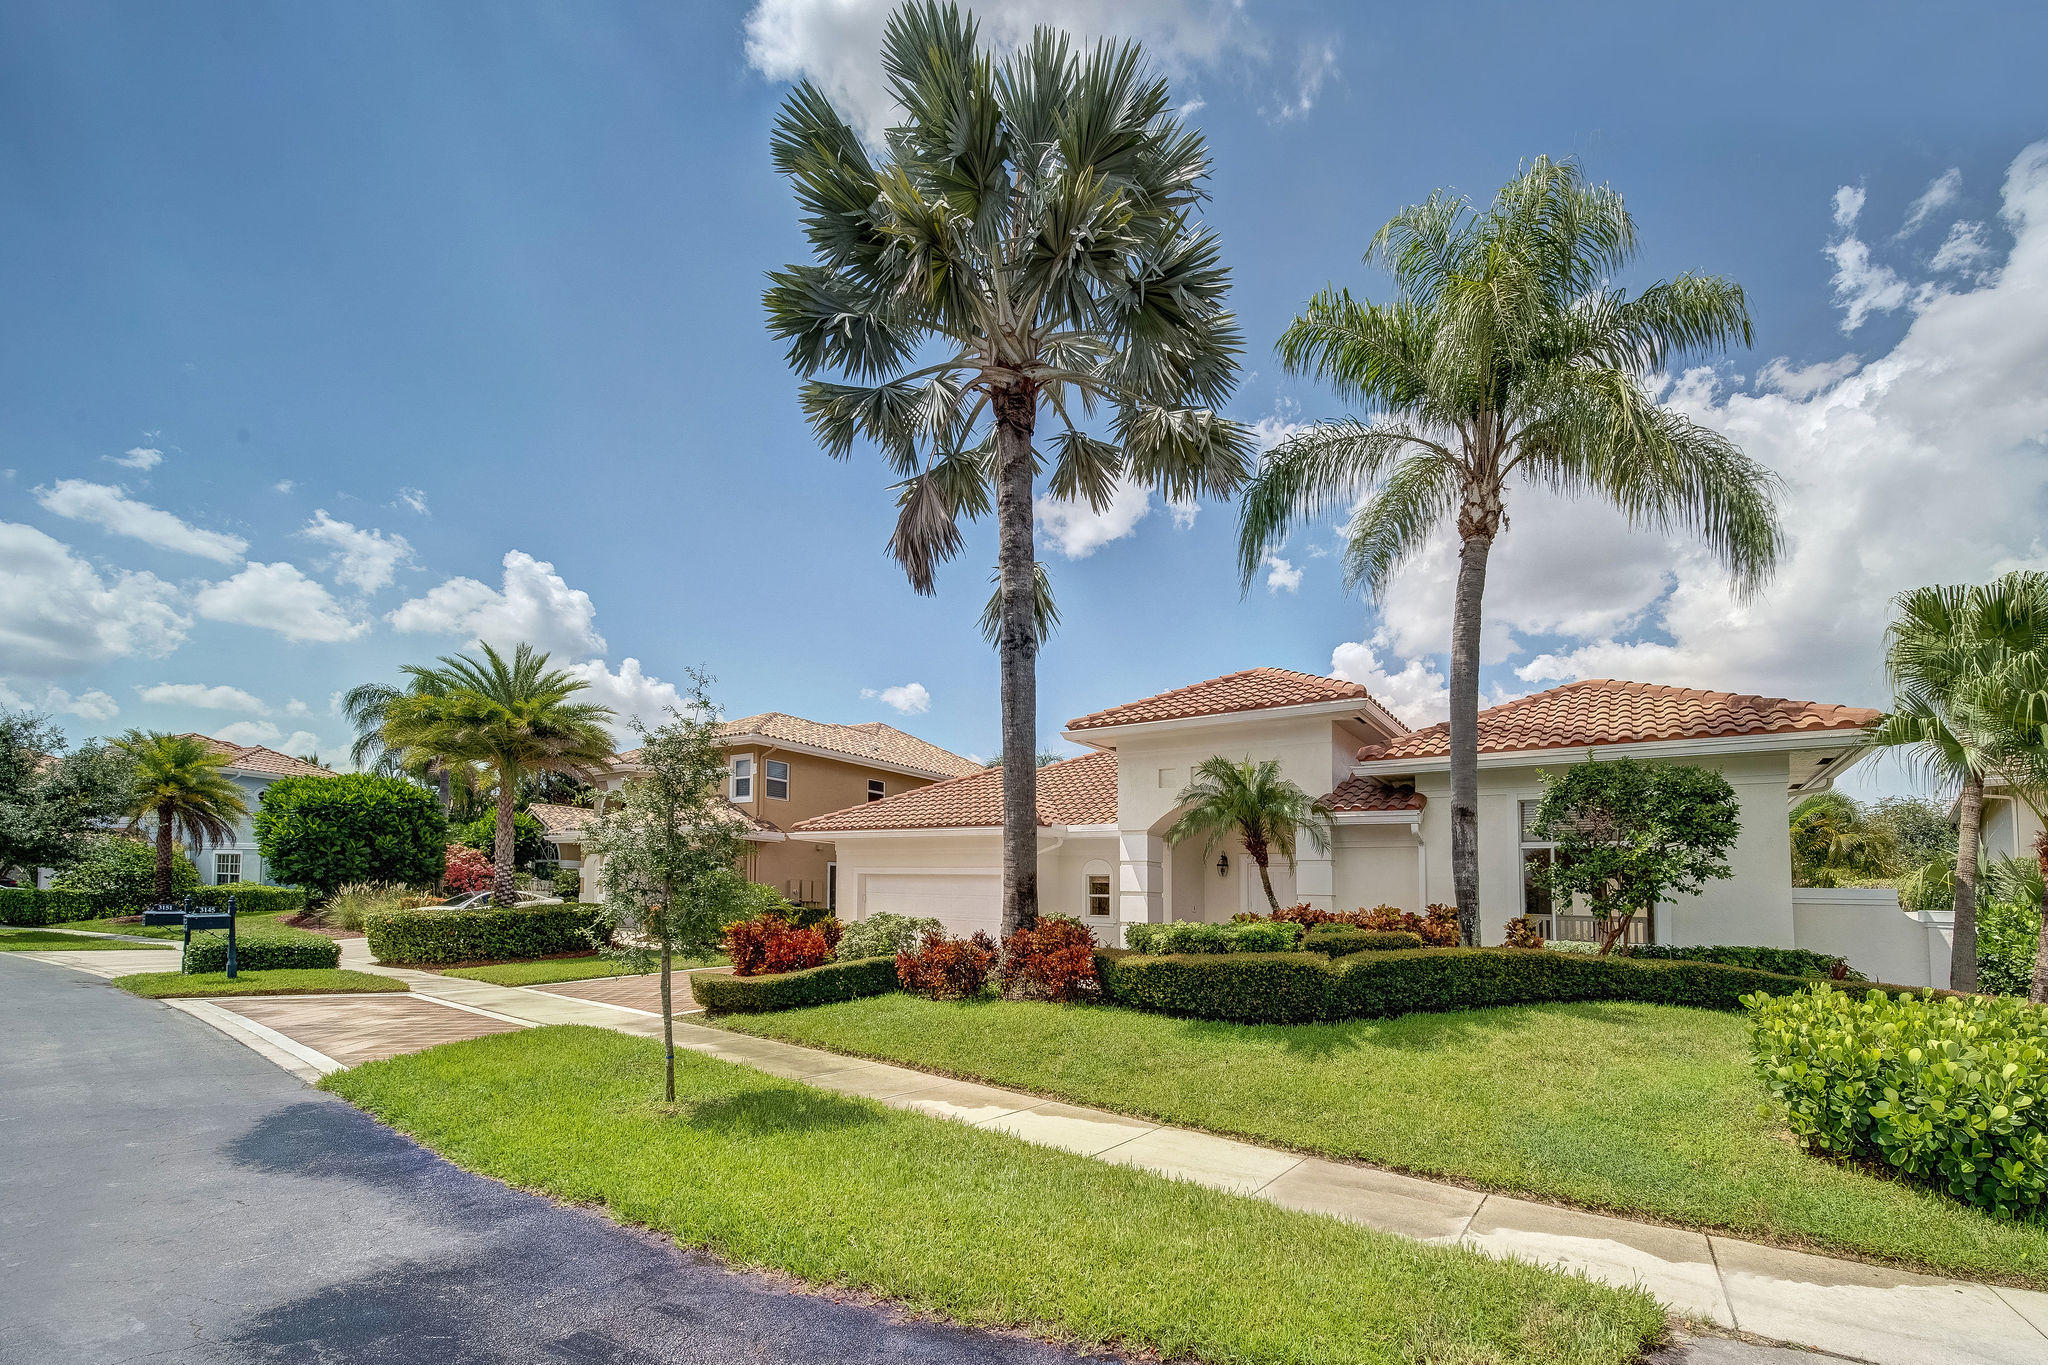 Photo of 3145 NW 63rd Street, Boca Raton, FL 33496